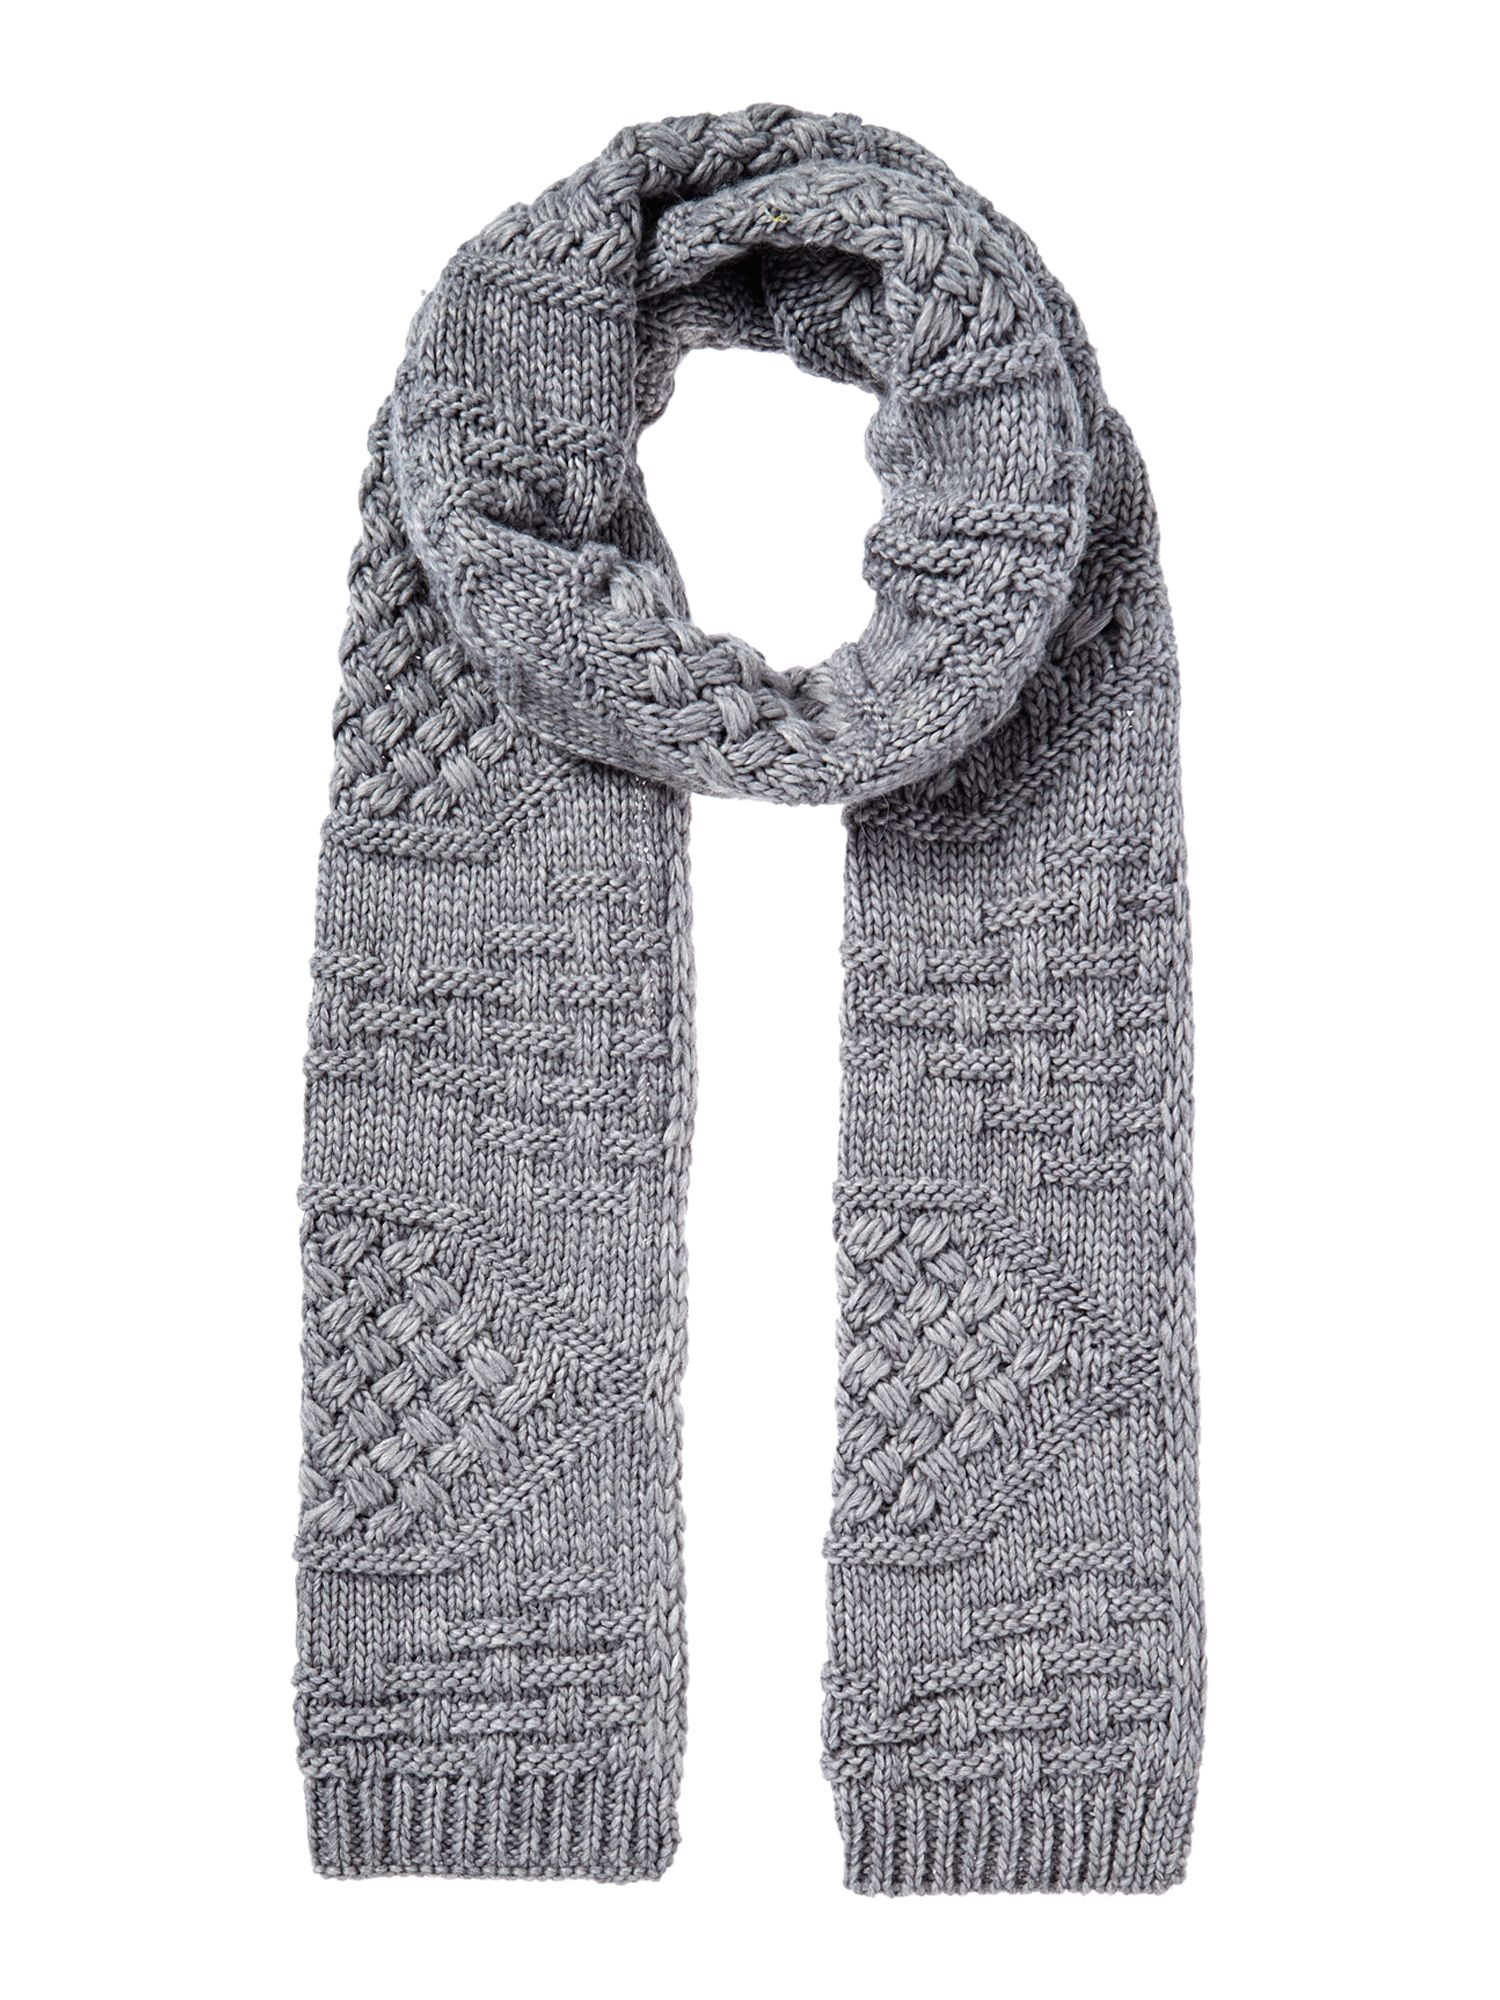 Vintage Scarves- New in the 1920s to 1960s Styles Linea Cable Knit Scarf Grey £15.00 AT vintagedancer.com